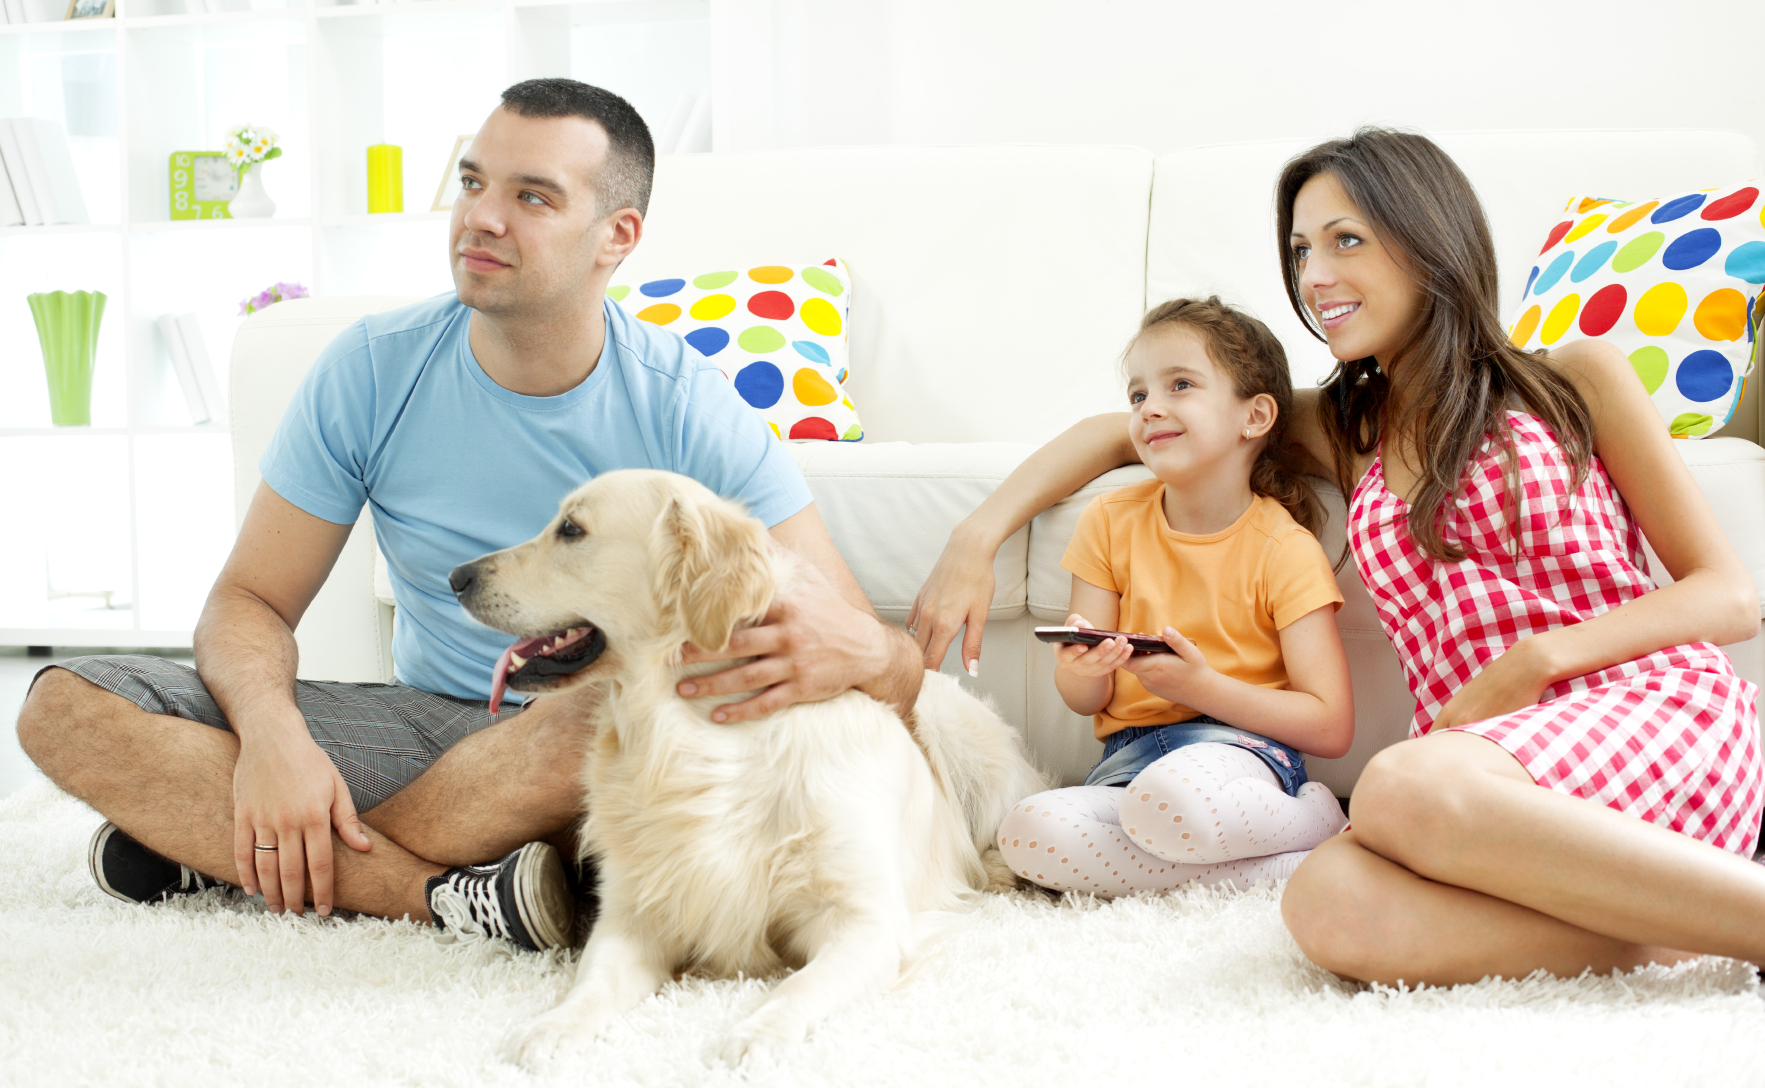 The Best Streaming Service For Family Movie Night